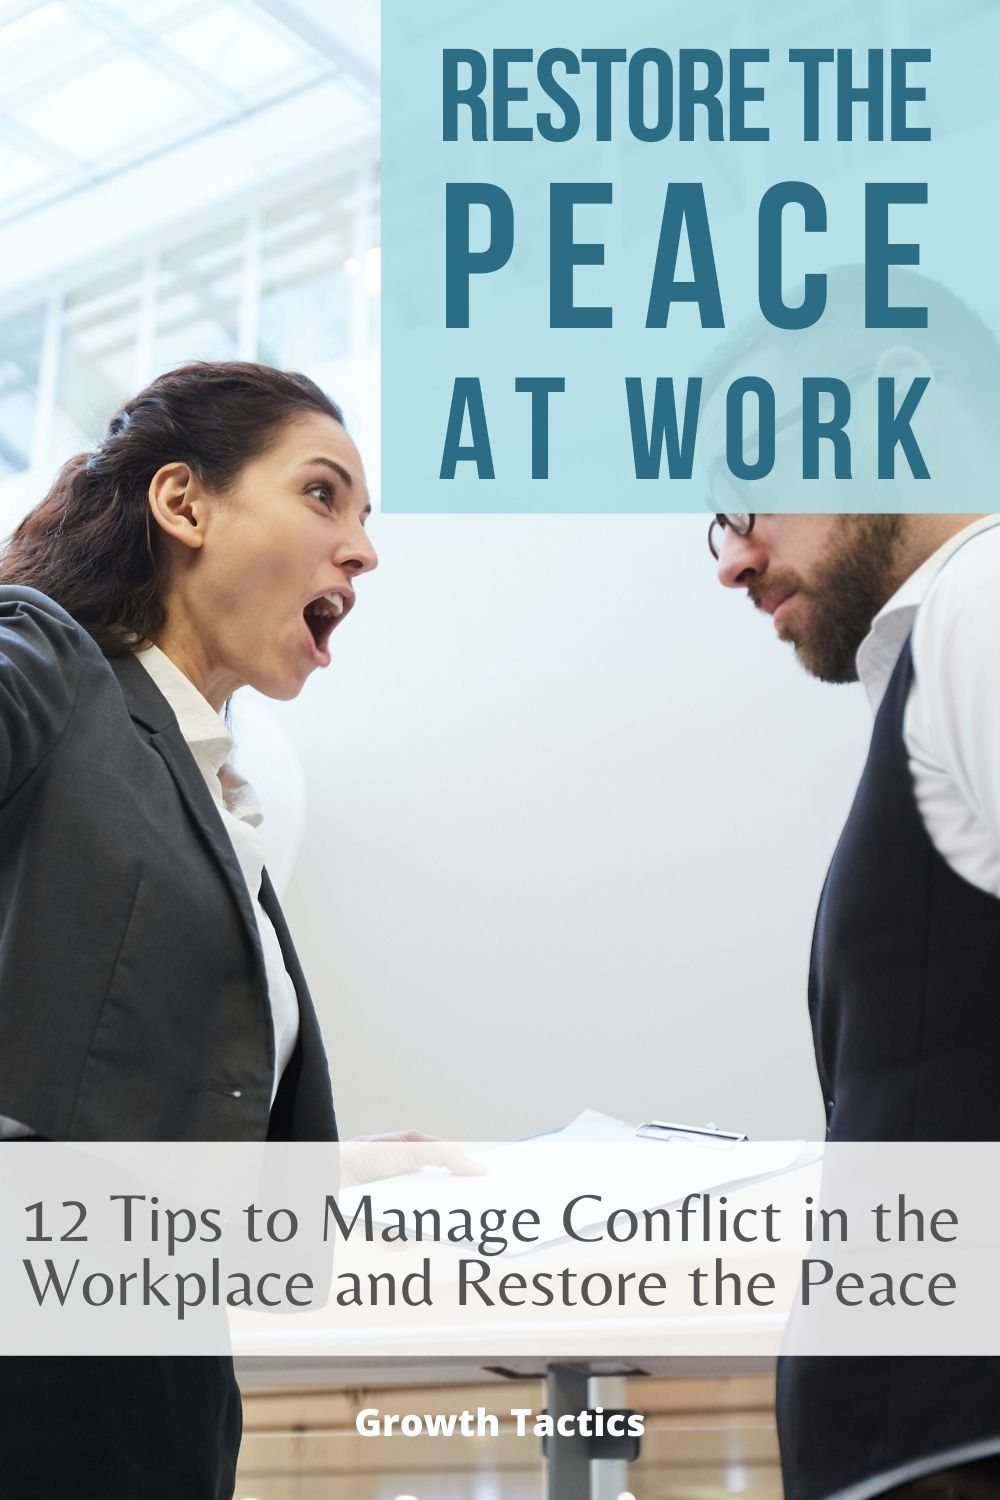 12 Tips to Manage Conflict in the Workplace and Restore the Peace